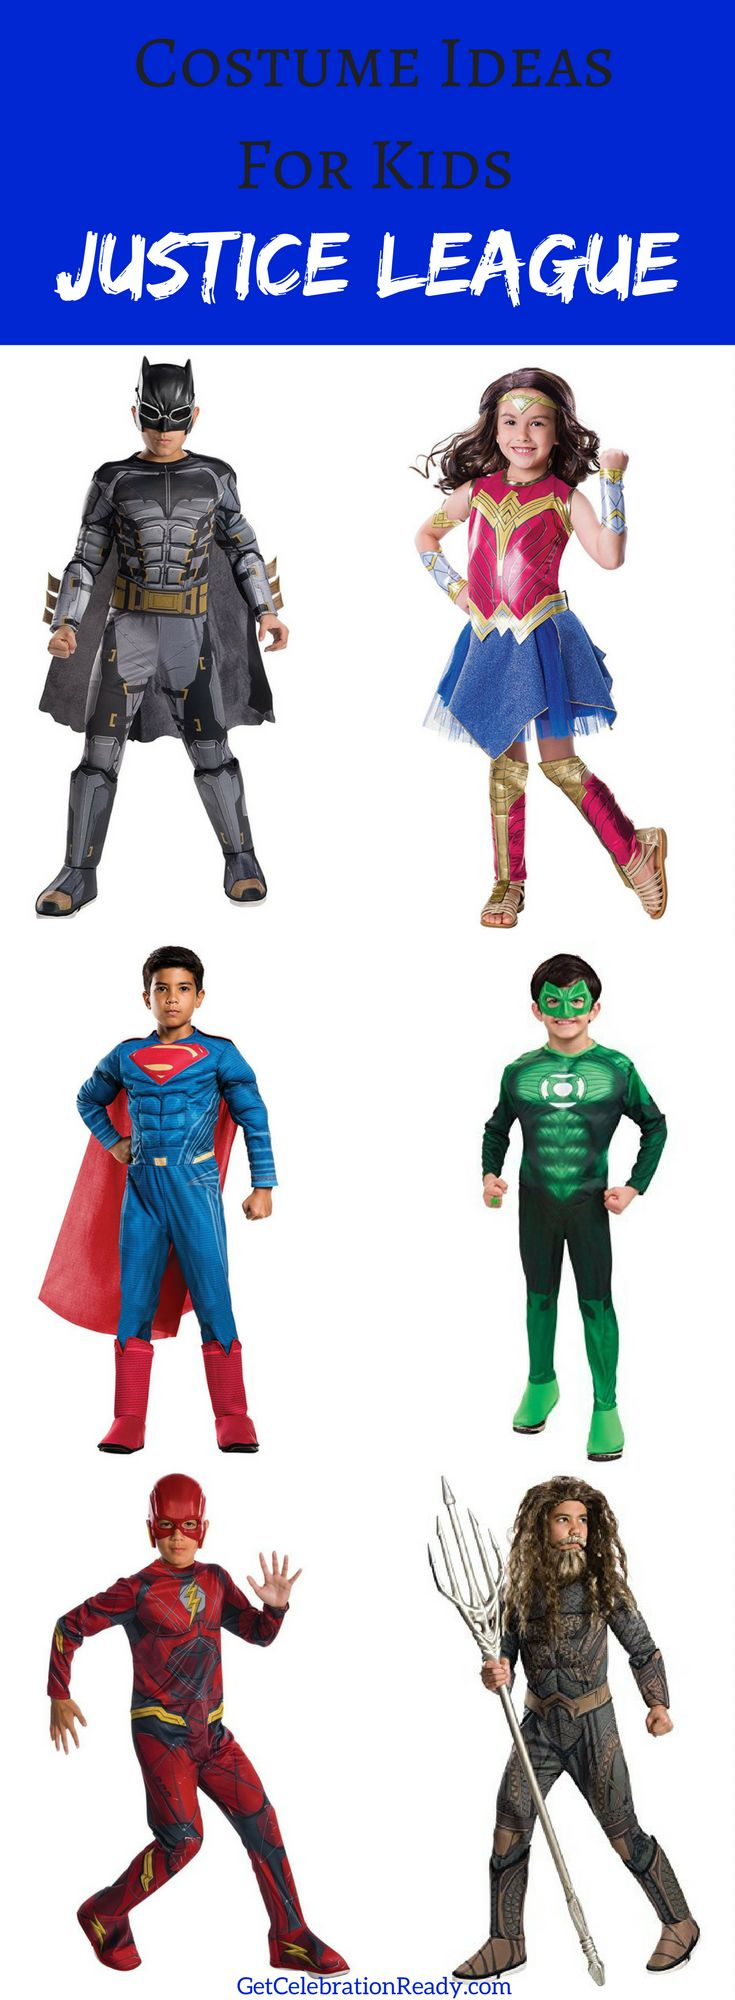 Justice League is a perfect idea for kids costumes this Halloween. Dress siblings as different Justice League superhero characters and keep everyone in the same theme. Great Halloween costumes for babies, toddlers, kids and teens.